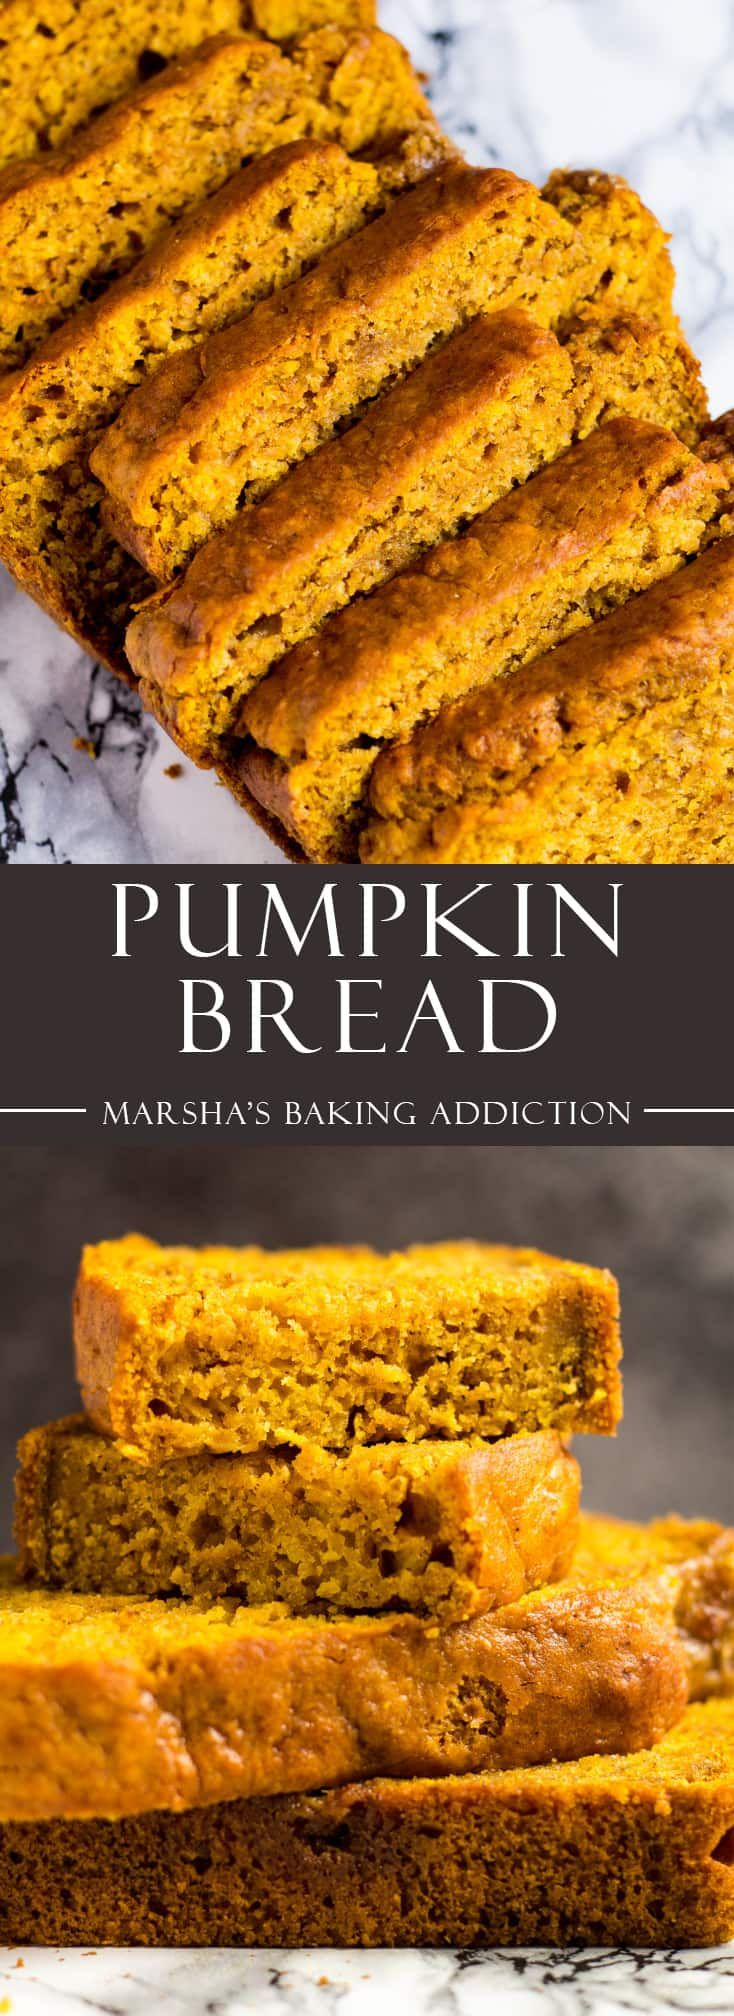 Pumpkin Bread- This incredibly moist pumpkin bread that is perfectly spiced is the BEST way to kick-startyour autumn! Recipe on marshasbakingaddiction.com